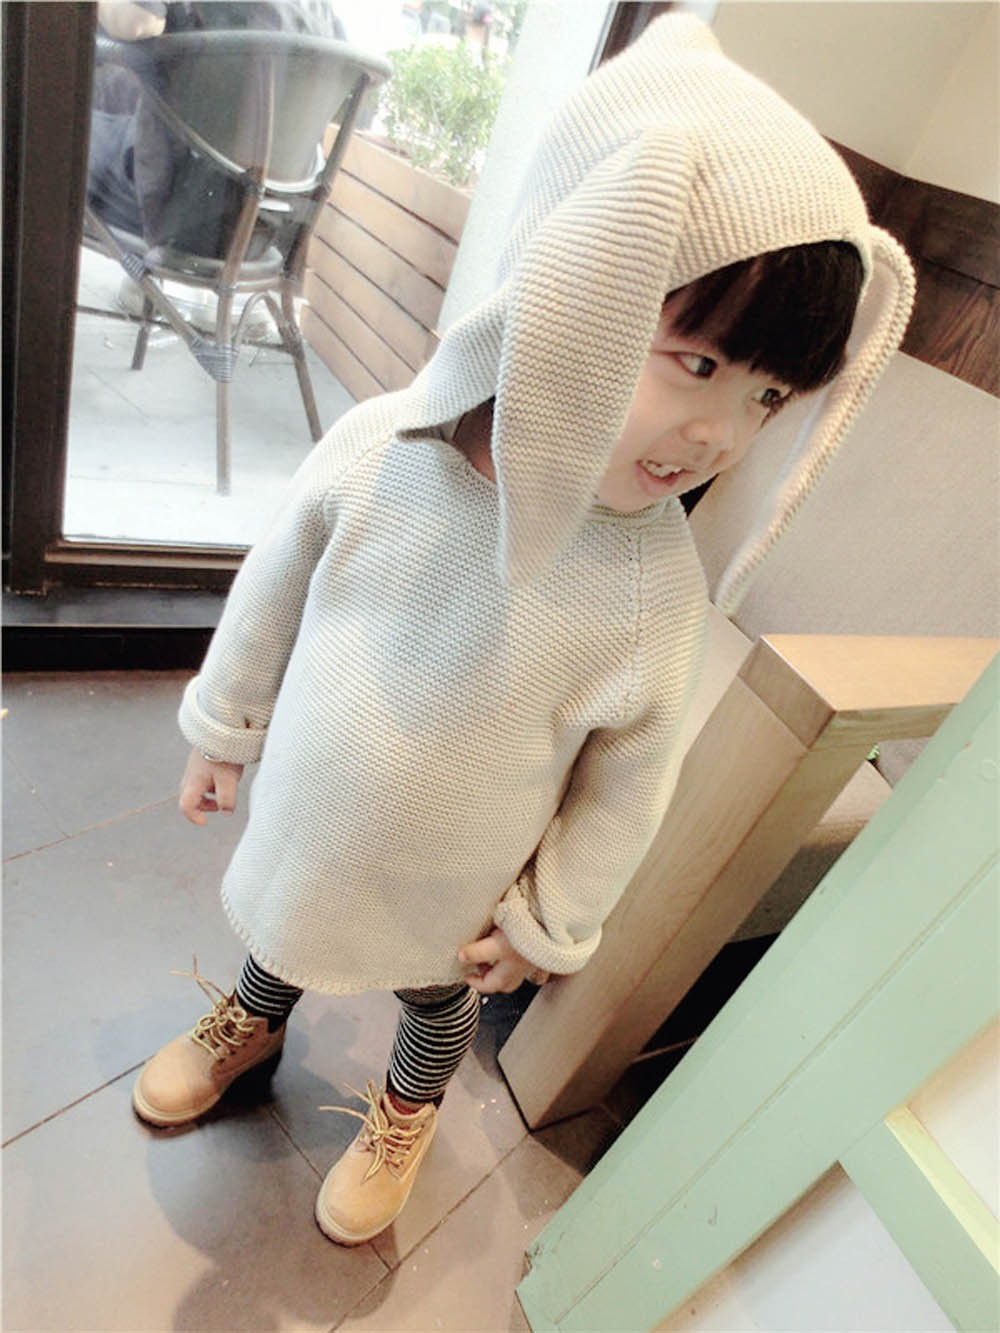 2015-New-Autumn-Baby-Rabbit-Sweater-Children-Knitted-Jumpsuit-Toddler-Rompers-Fashion-Design-Jumpsuits-Kids-Costume-CL0747 (20)